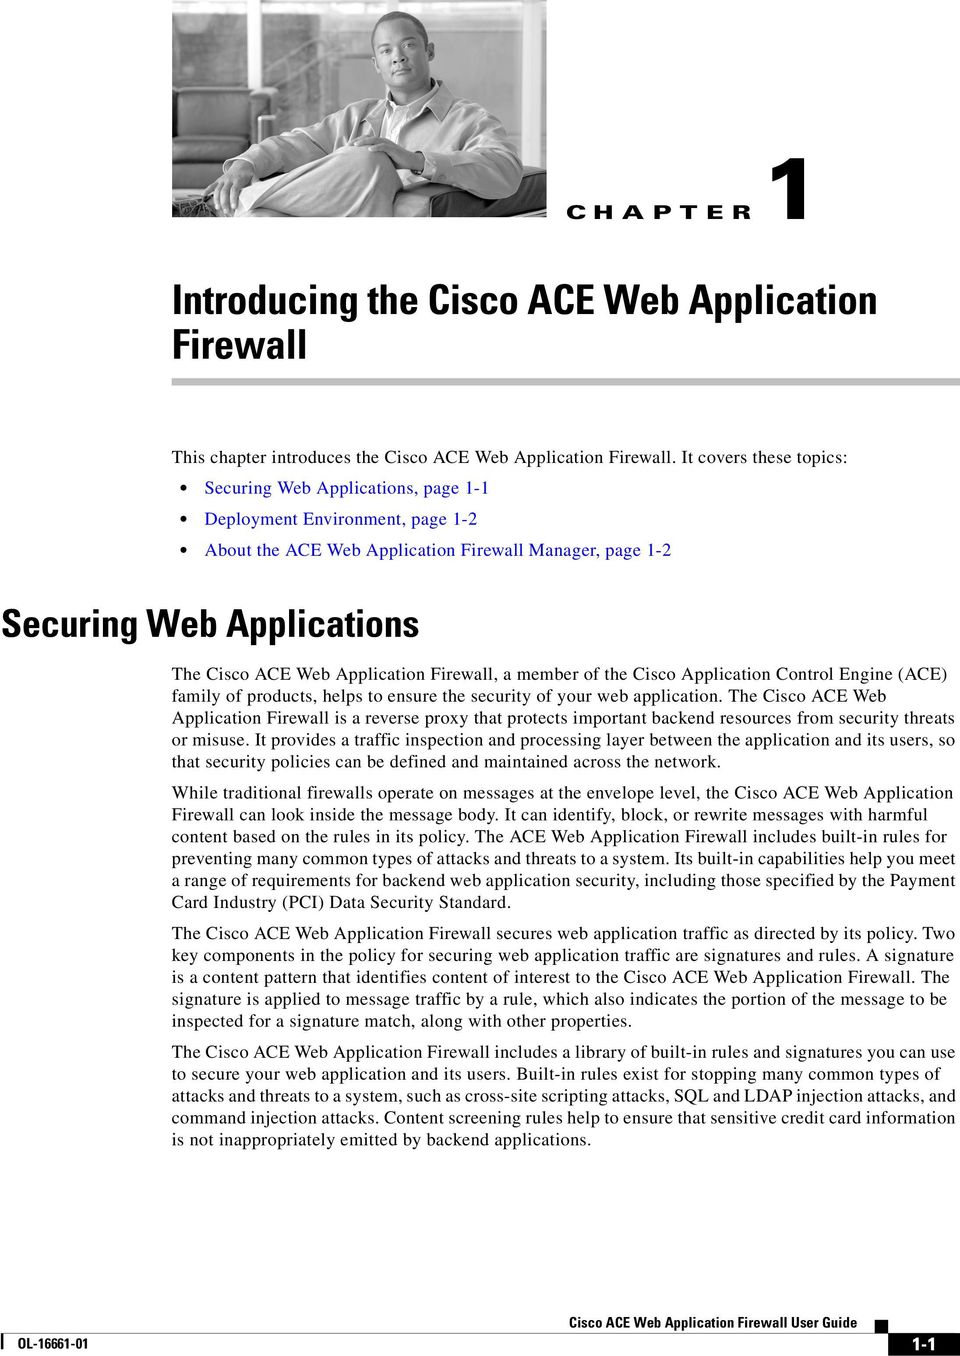 Application Firewall, a member of the Cisco Application Control Engine (ACE) family of products, helps to ensure the security of your web application.